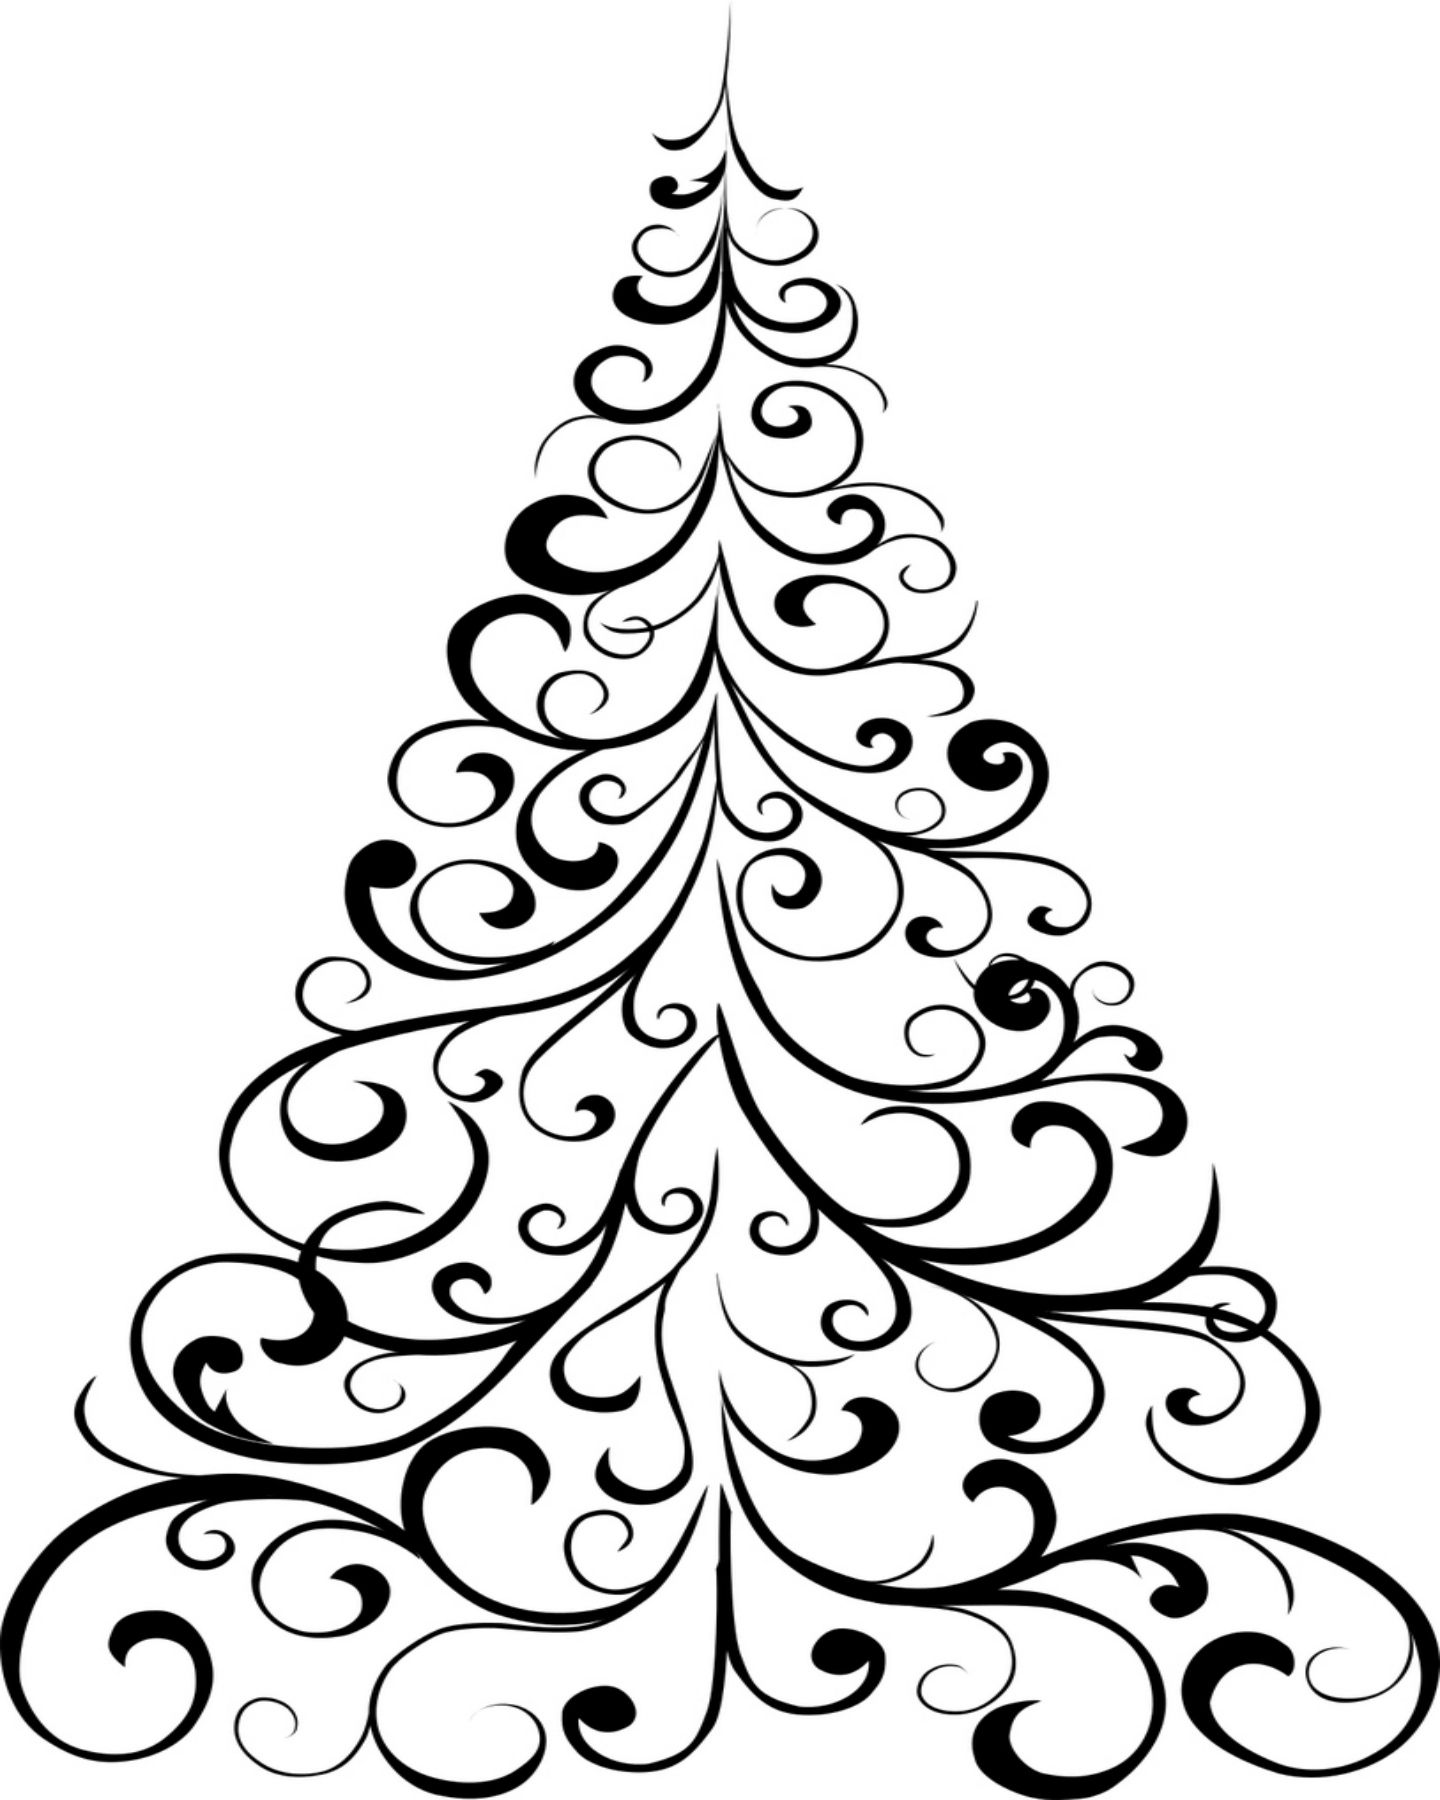 free printable christmas tree coloring page | holly jolly x-mas